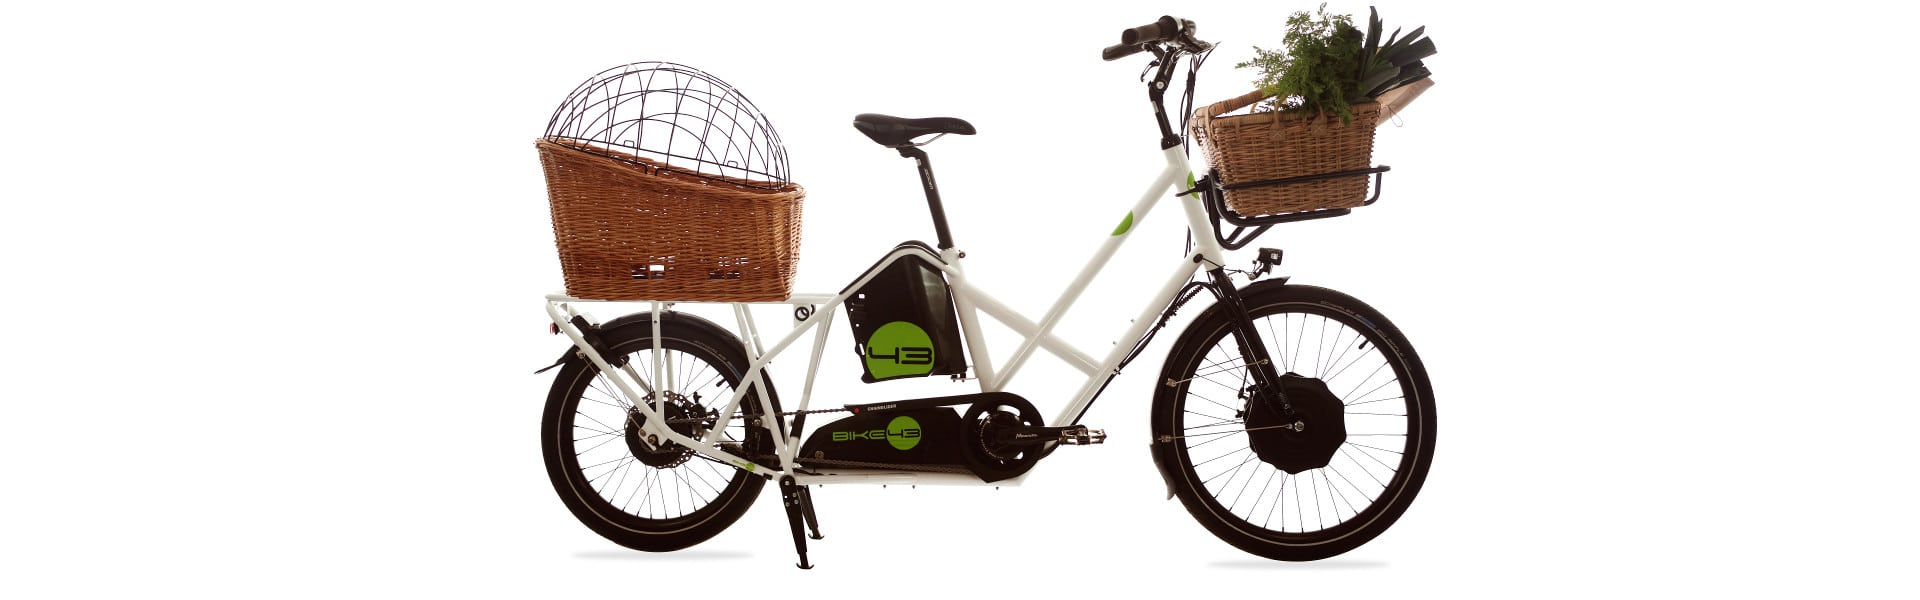 dog transport bicycle